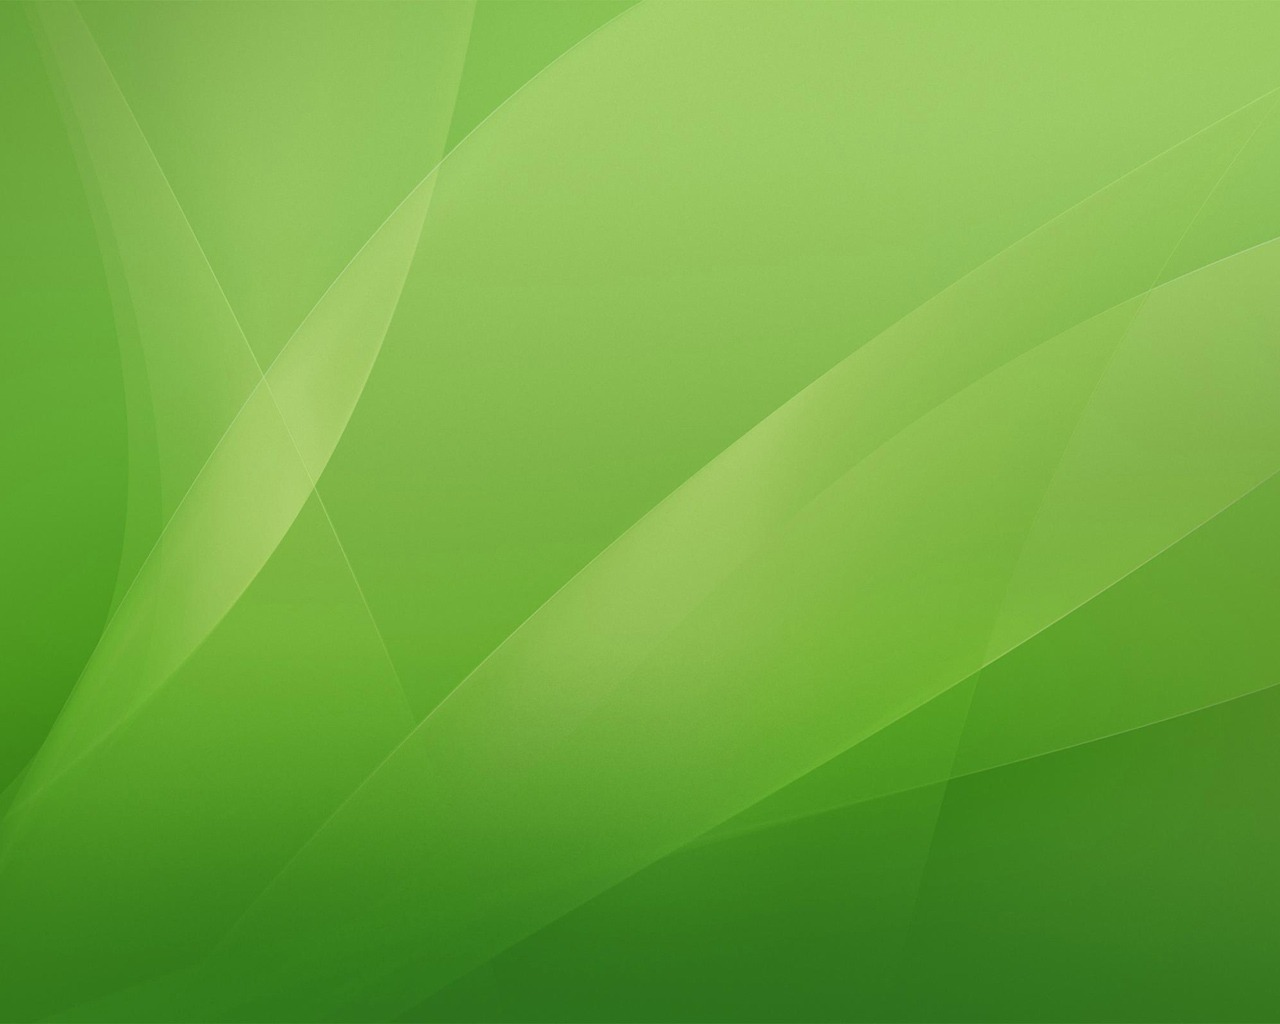 Green wallpaper abstract other wallpapers in jpg format for free green wallpaper abstract other wallpapers aloadofball Gallery